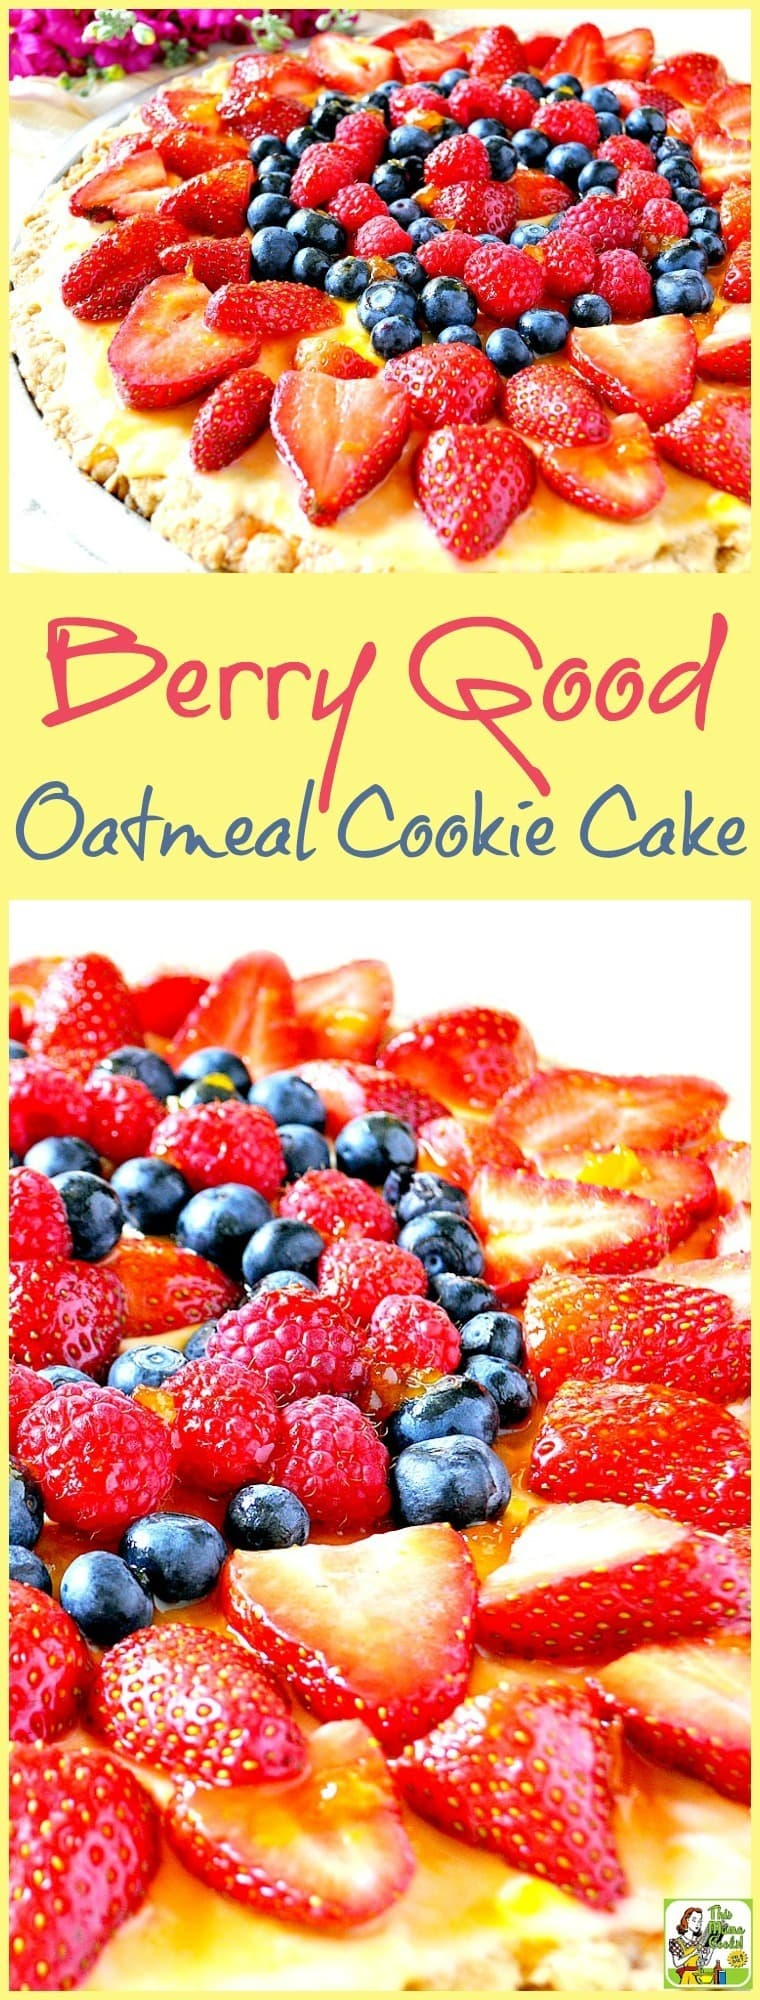 Make Berry Good Oatmeal Cookie Cake for holidays and backyard parties. Made with slices of fruits like kiwi, star fruit, peaches, blackberries, banana, and pineapple placed on a giant oatmeal cookie. #recipes #easy #recipeoftheday #healthyrecipes #glutenfree #easyrecipes #cookies #cookierecipes #baking #fruit #oatmeal #oatmealcookies #berries #desserts #dessertrecipes #dessertideas